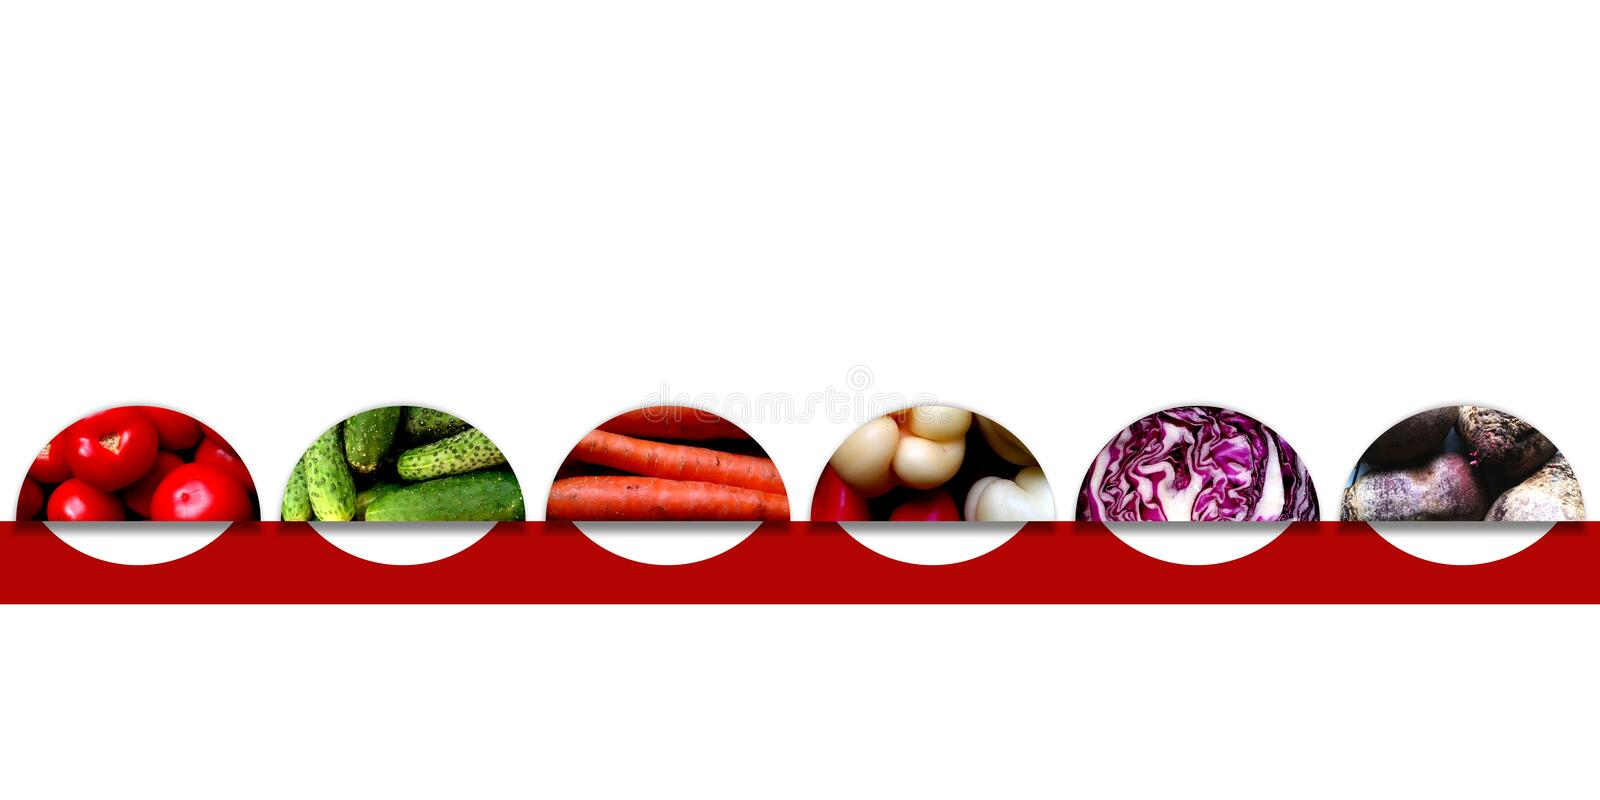 Semicircles with organic vegetables. Set of six semicircles full of organic vegetables: tomatoes, cucumbers, carrots, sweet peppers, red cabbage and beetroots royalty free illustration